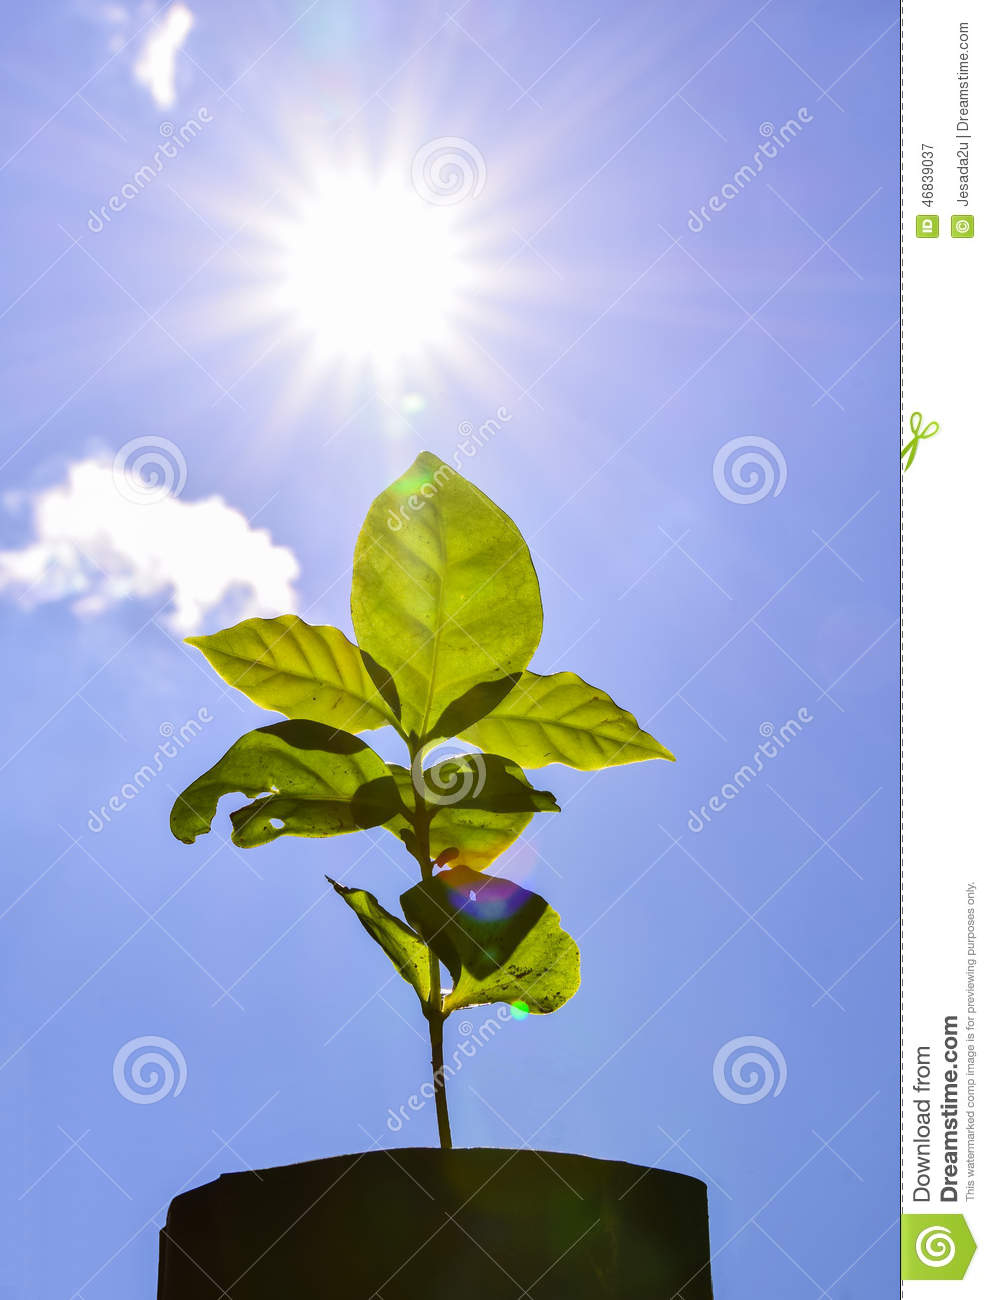 Download Young Plant Fresh New Life  Sun Power Flare Stock Image - Image of leaf, branch: 46839037